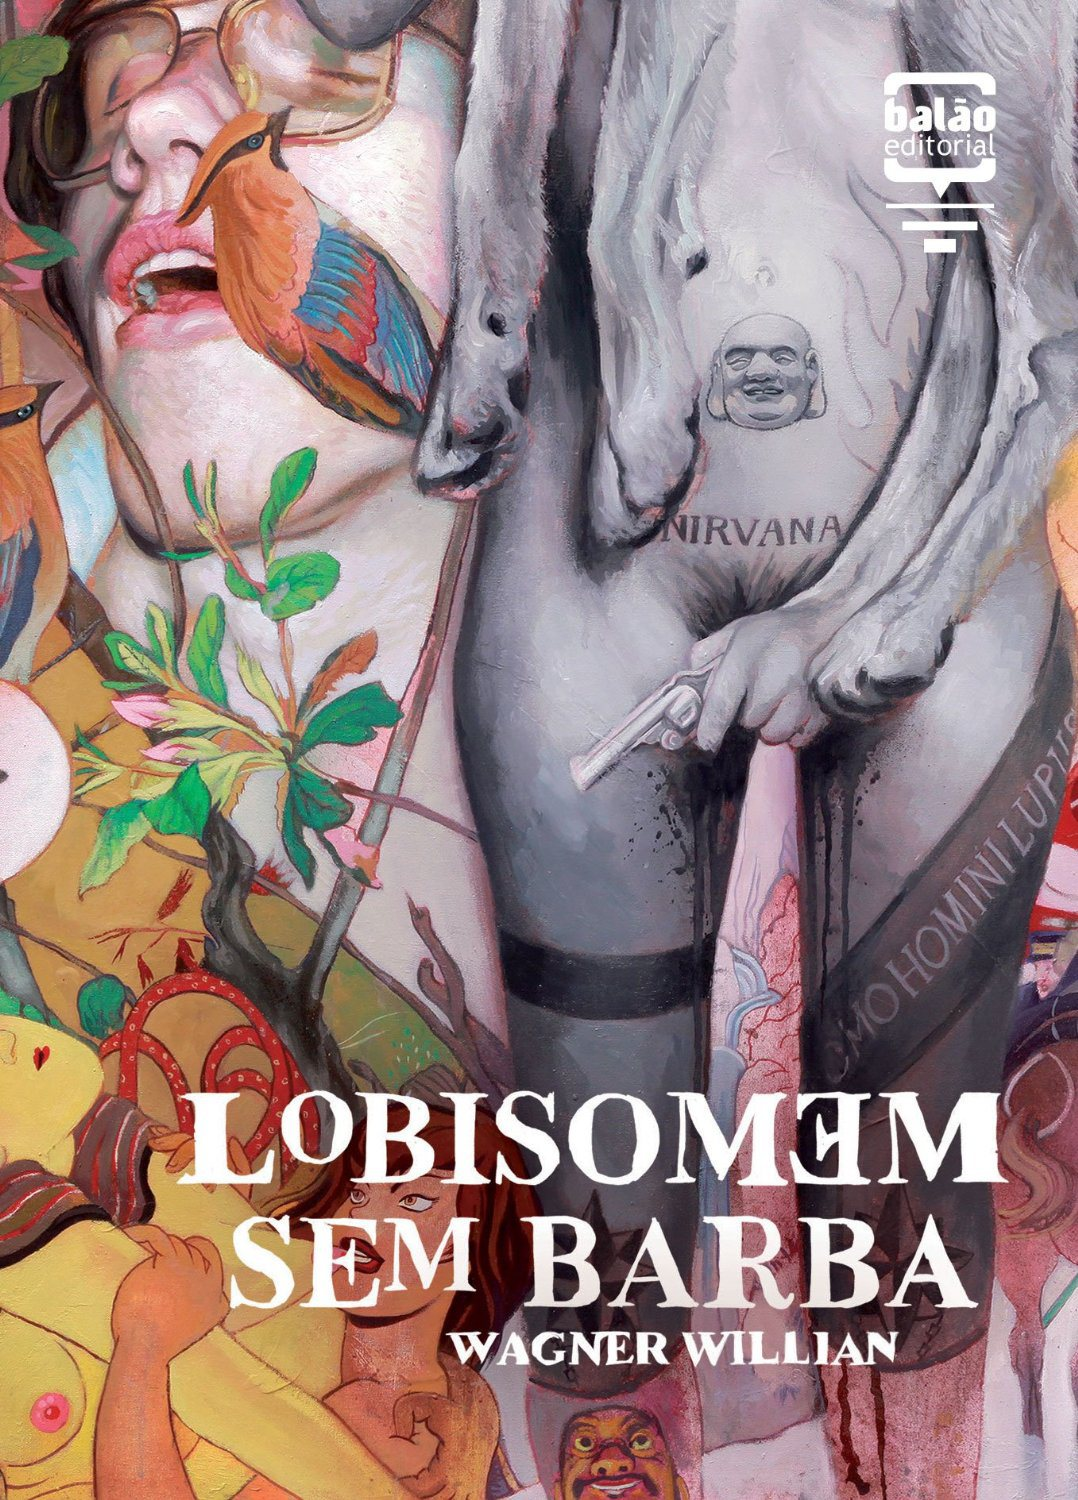 lobisomem-sem-barba-wagner-willian-balao-editorial